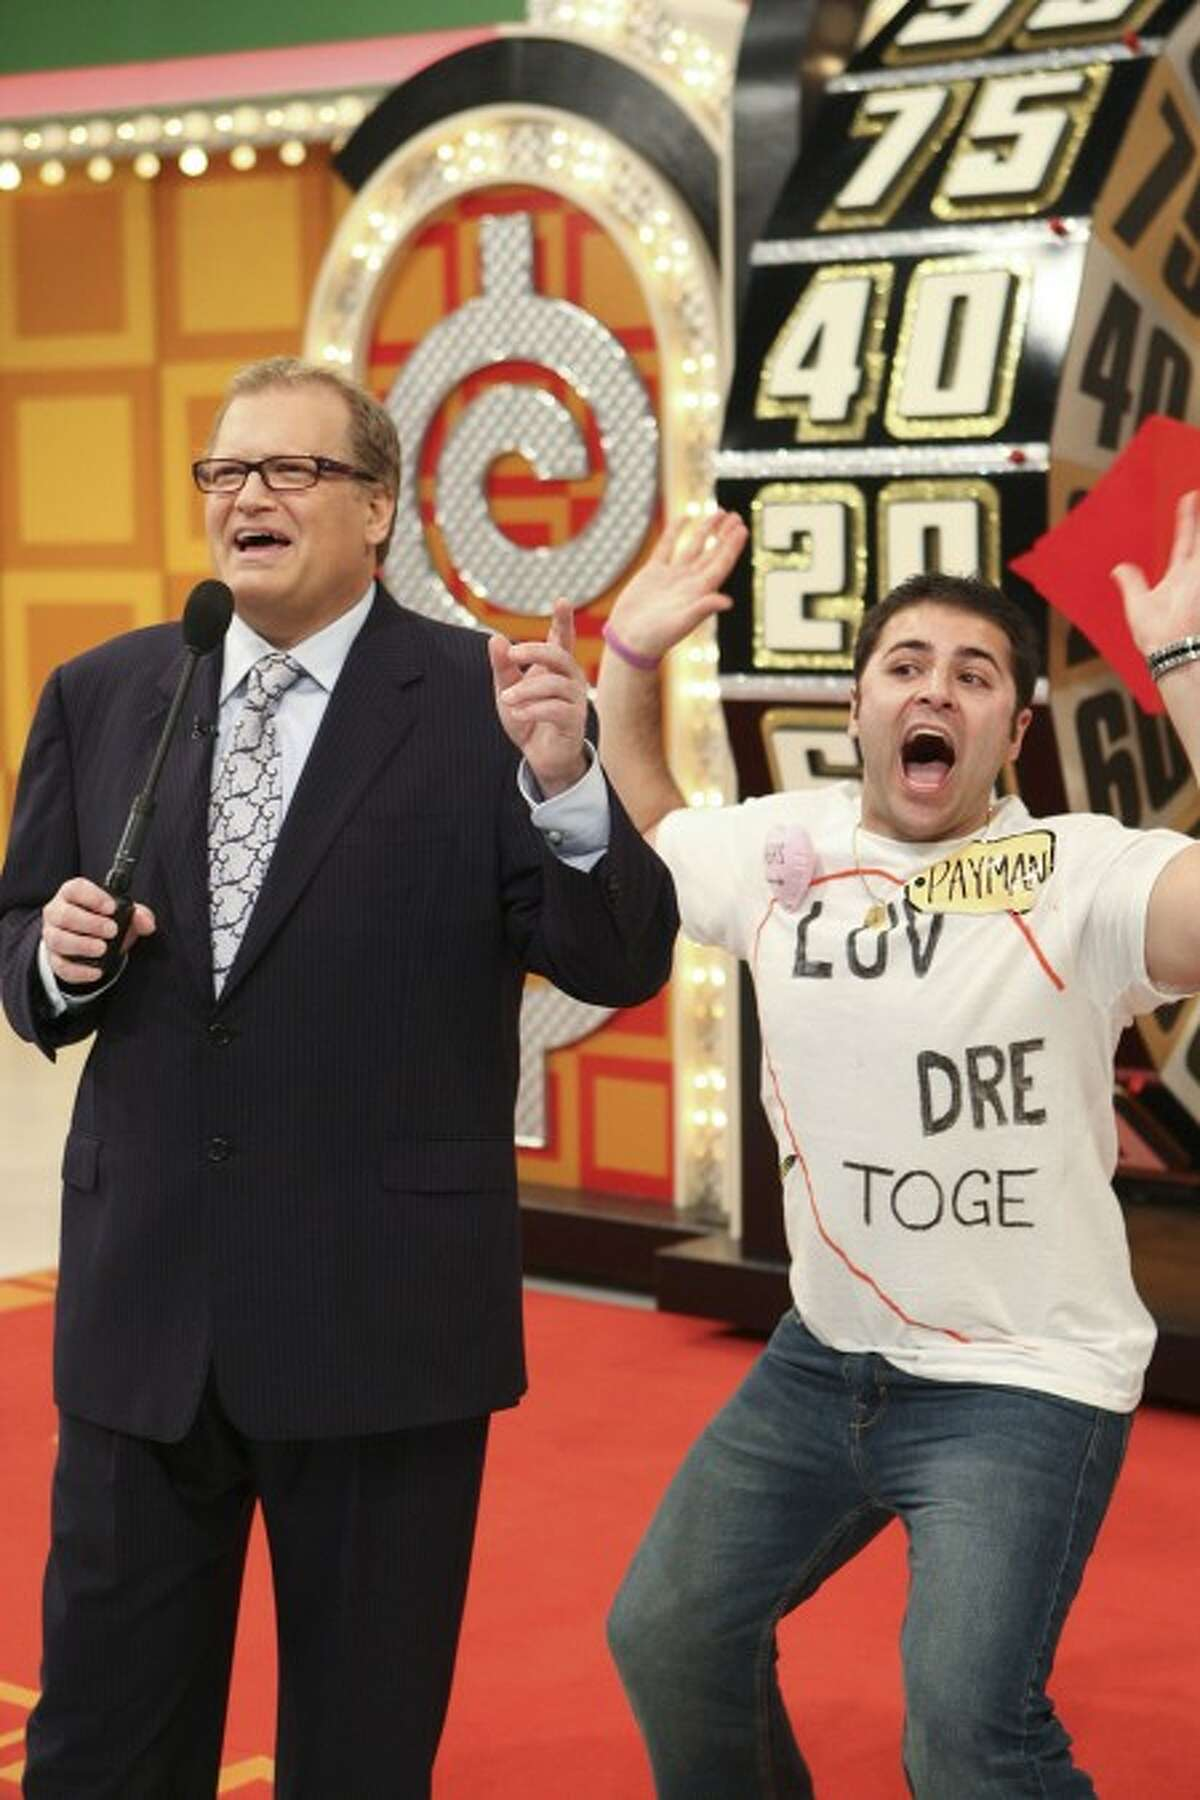 Host Drew Carey, left,stands with contestant Payman Farrokhgar on stage during